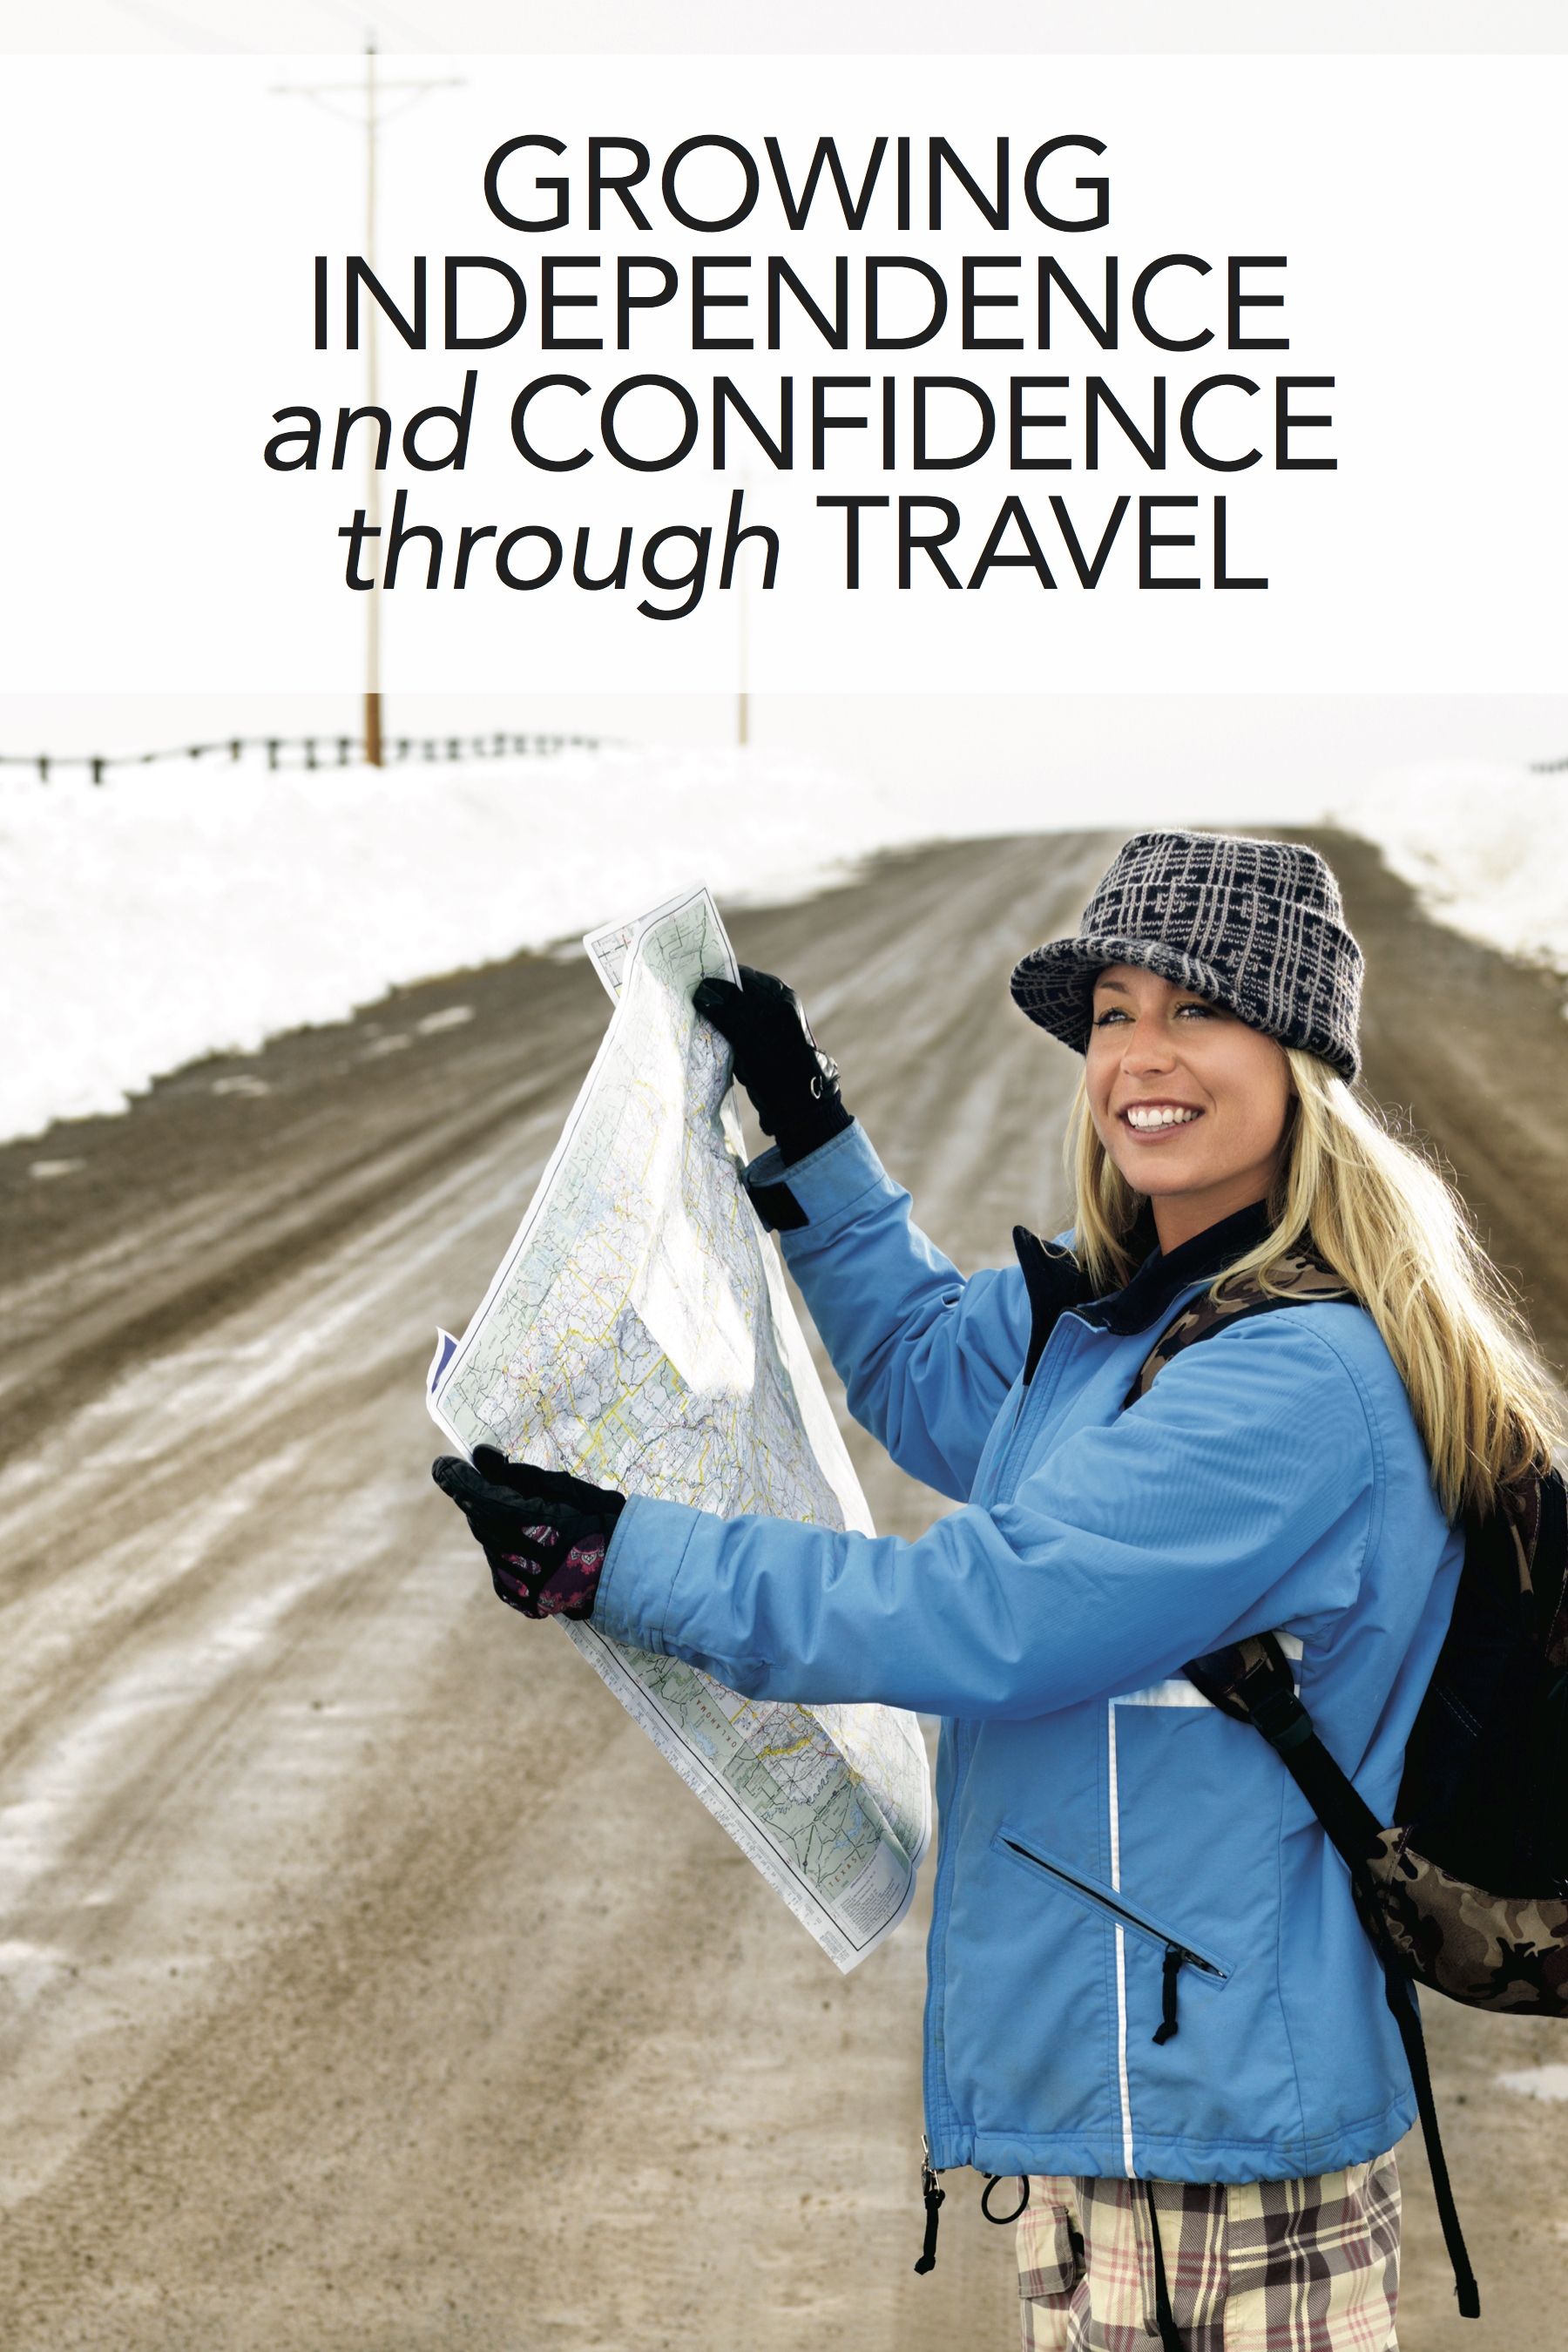 Growing Through Traveling: Independence, Confidence, and What We Become Away from Home